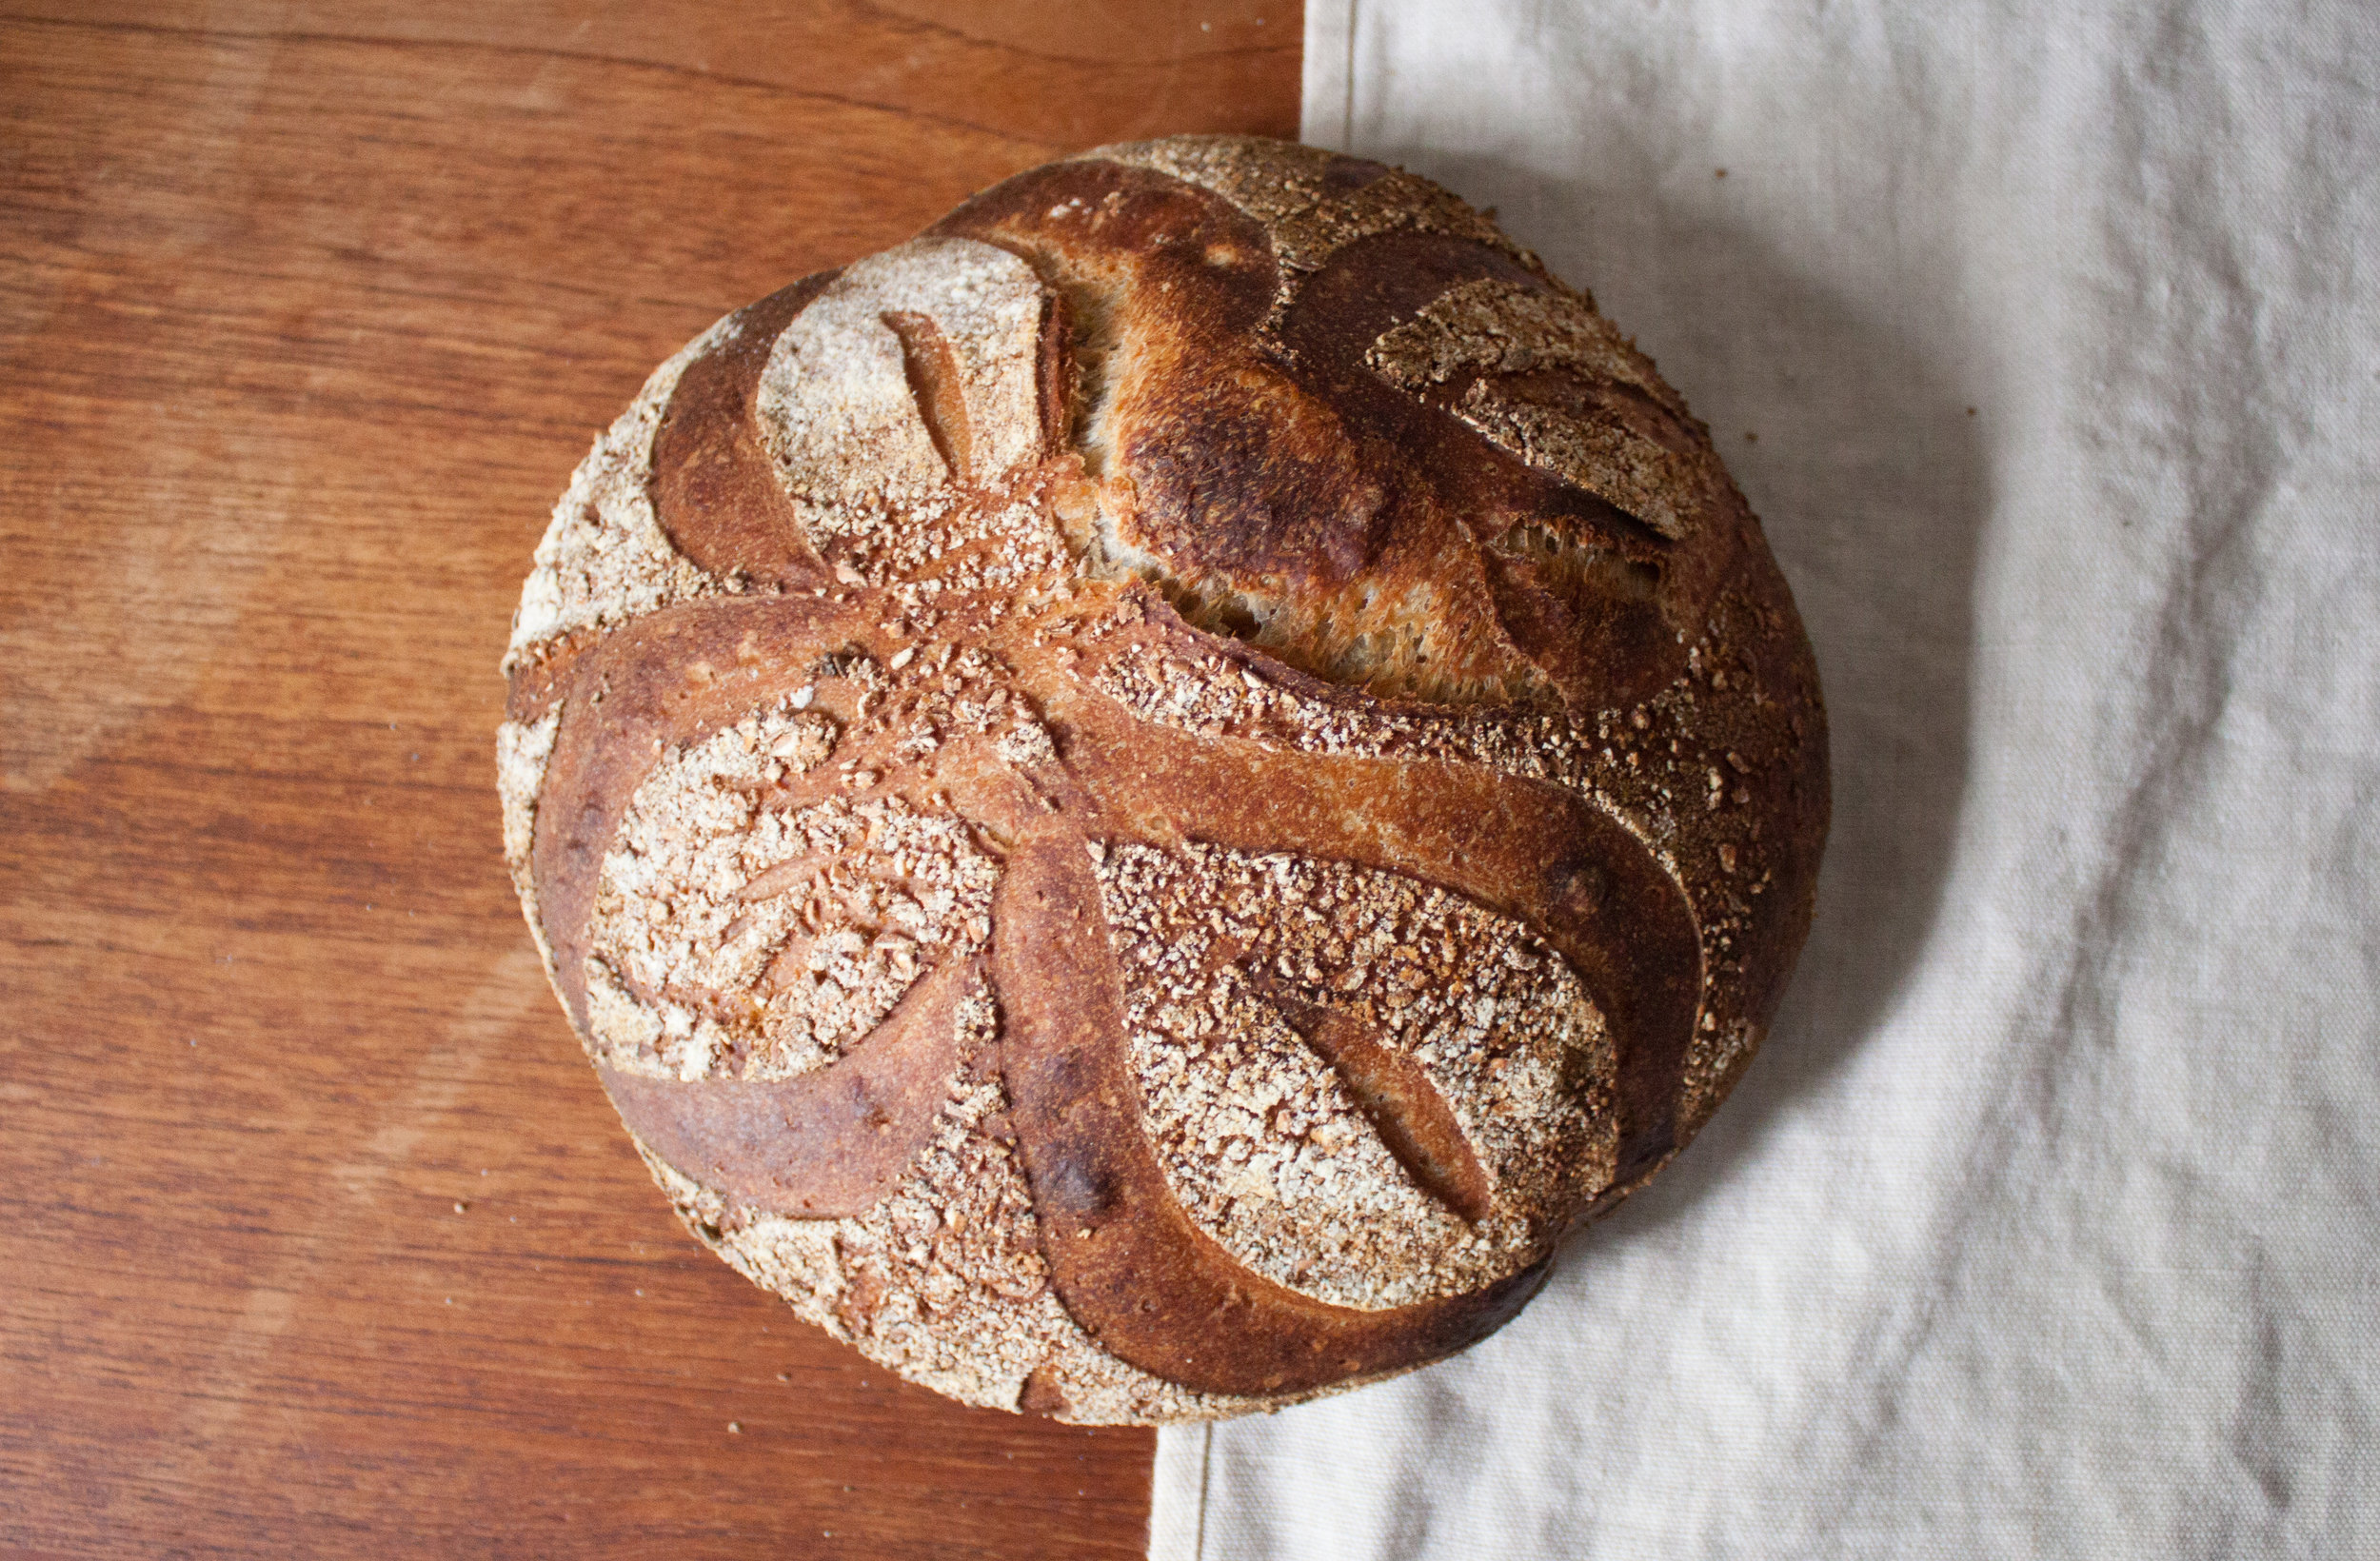 Einkorn whole wheat - Einkorn is our favorite ancient grain. This is a mix of whole fresh milled einkorn, high-extraction NY state whole wheat and white flour. Coated in coarse ground einkorn wheat.